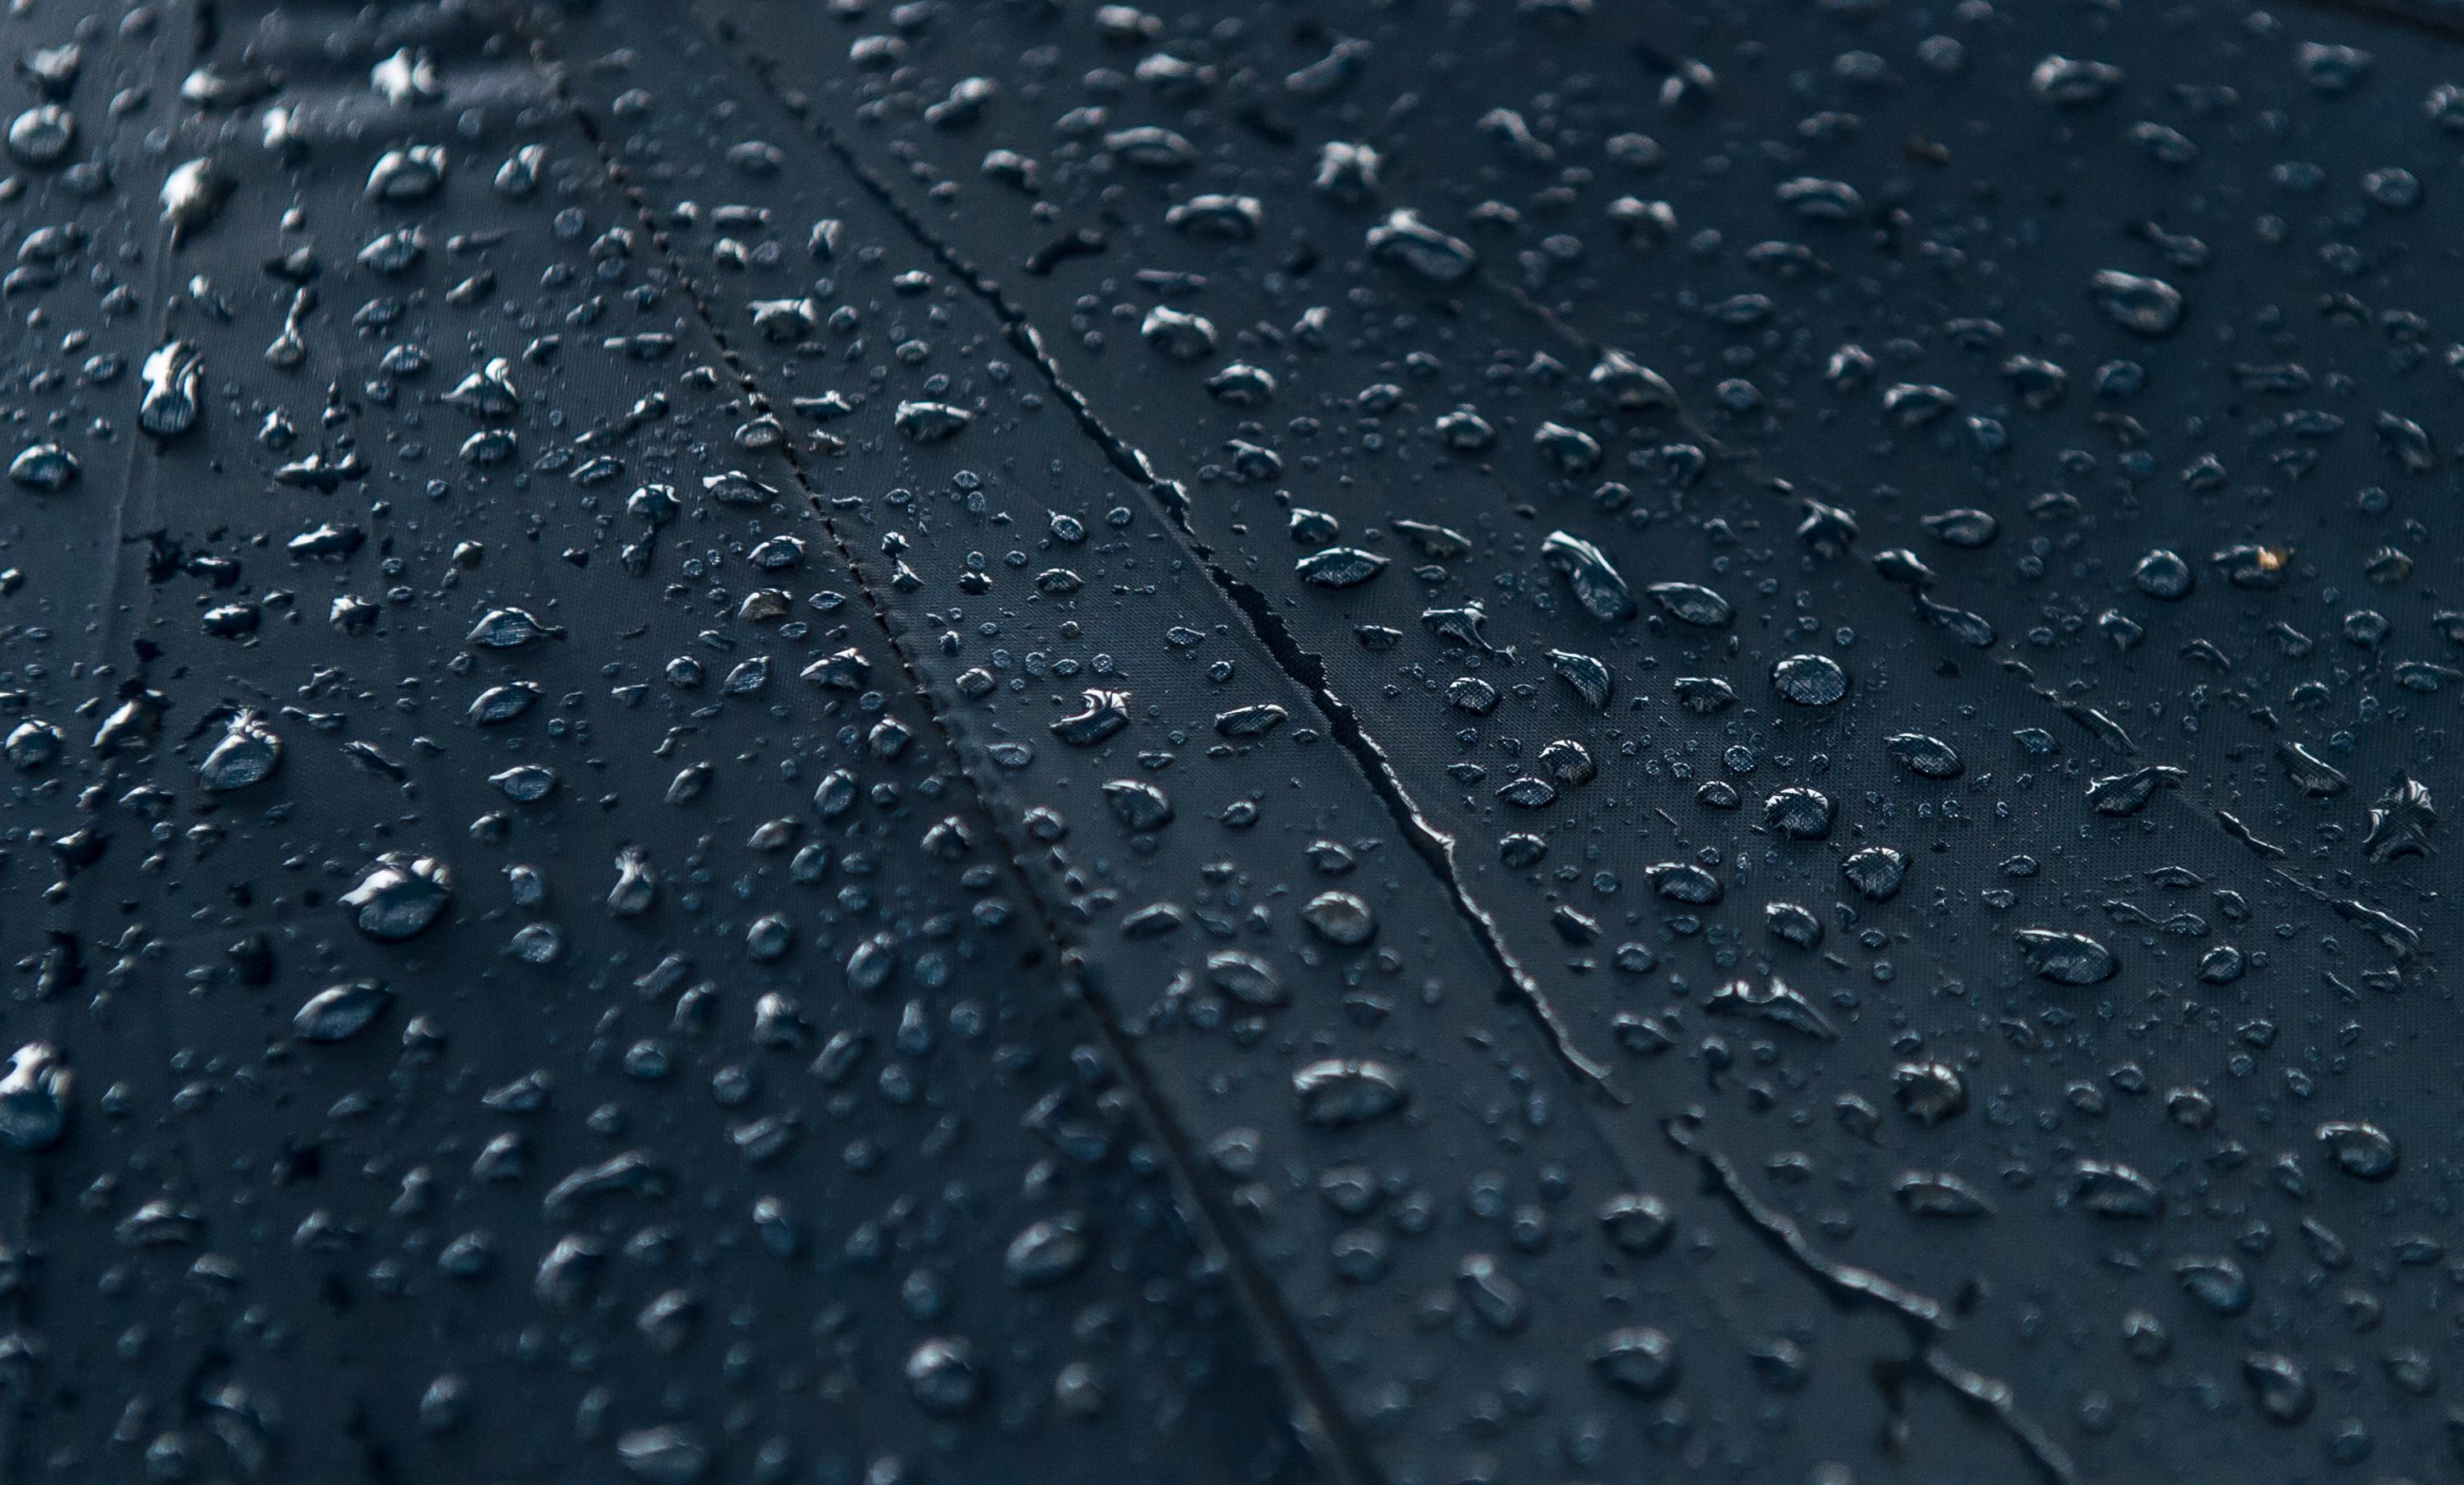 Raindrops on a surface.